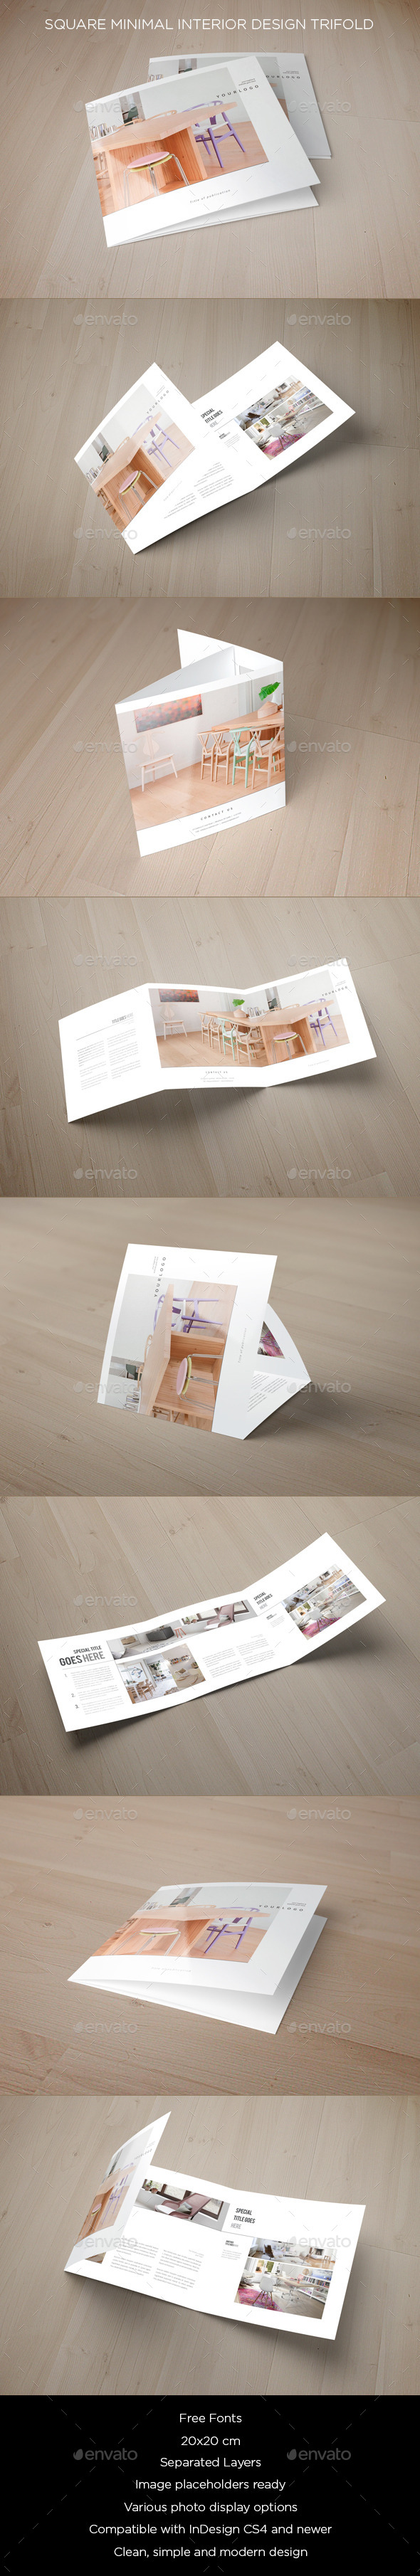 GraphicRiver Square Minimal Interior Design Trifold 8998194